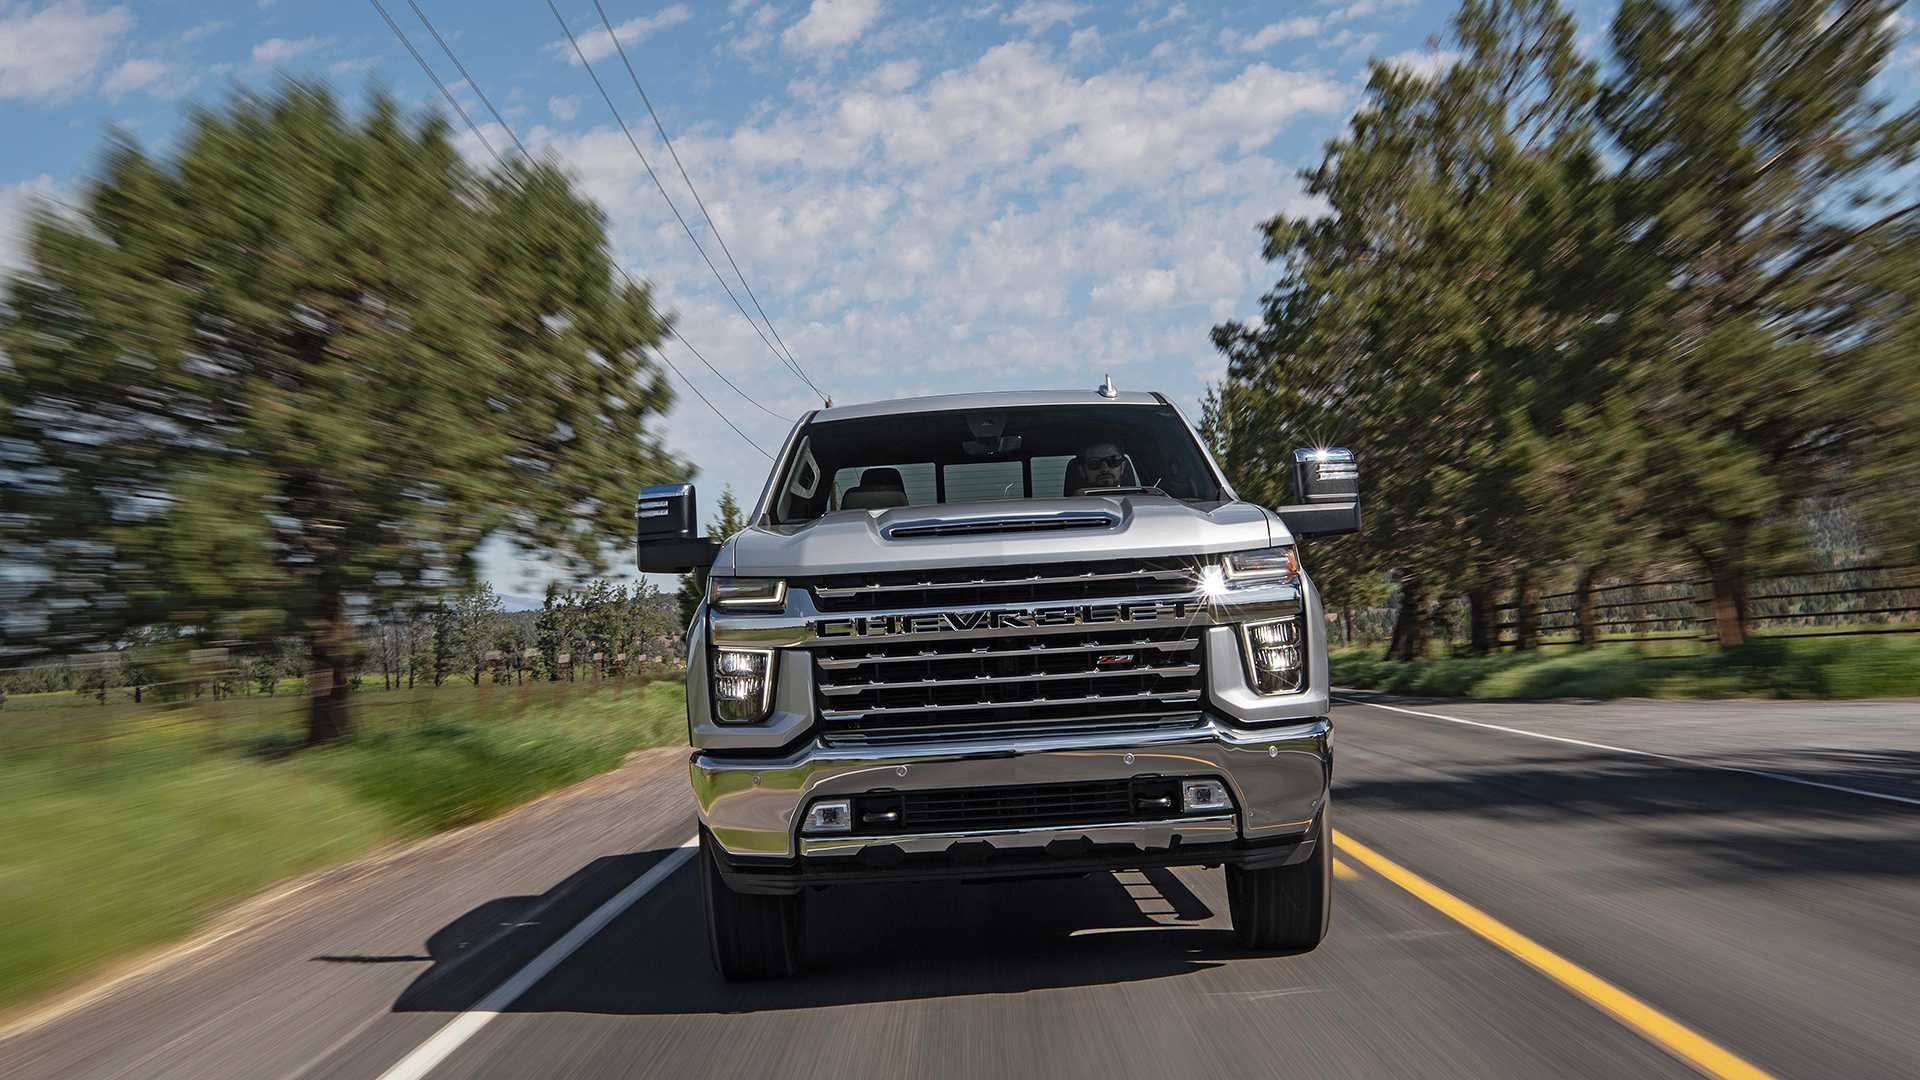 The Most Expensive 2020 Chevy Silverado HD Costs $80,890 ...